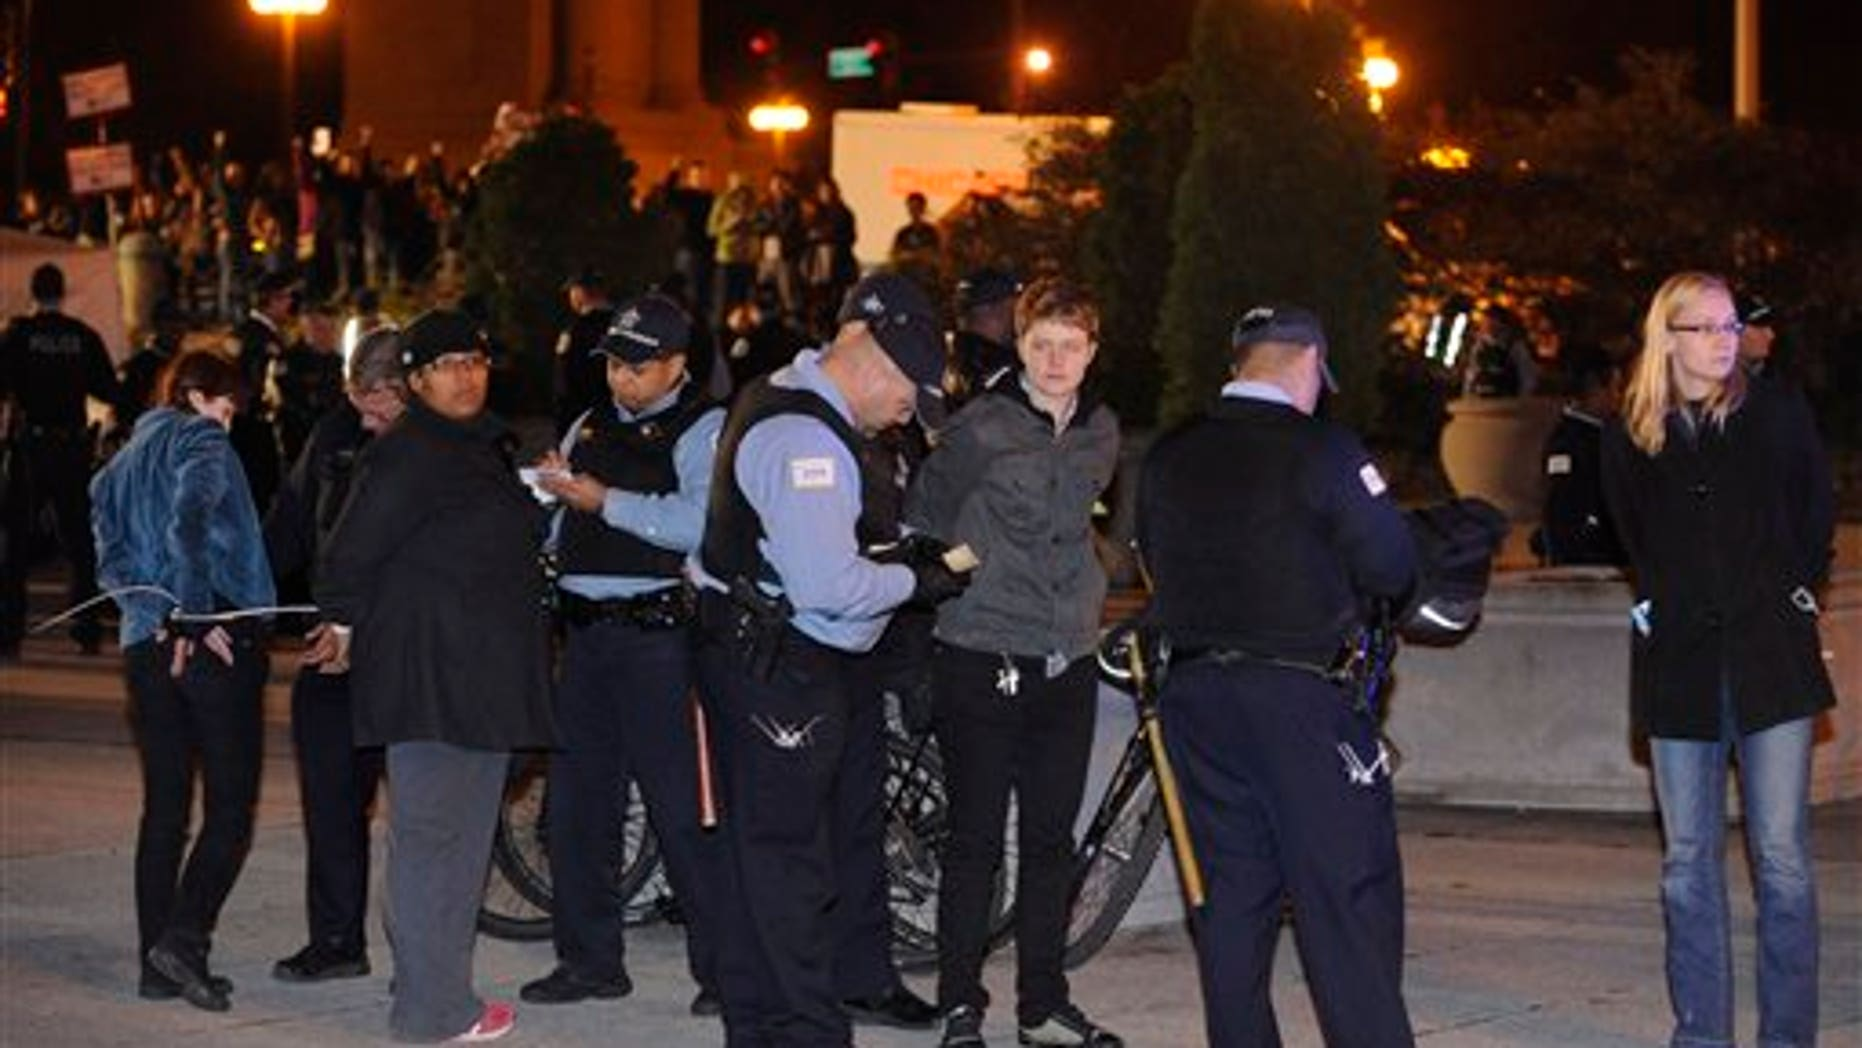 Oct. 23, 2011: Protesters are arrested during an Occupy Chicago march and protest at Grant Park in Chicago. Demonstrators of the anti-Wall Street group Occupy Chicago stood their ground in a downtown park and defied police orders to clear the area, prompting police to make more than a dozen arrests early Sunday.